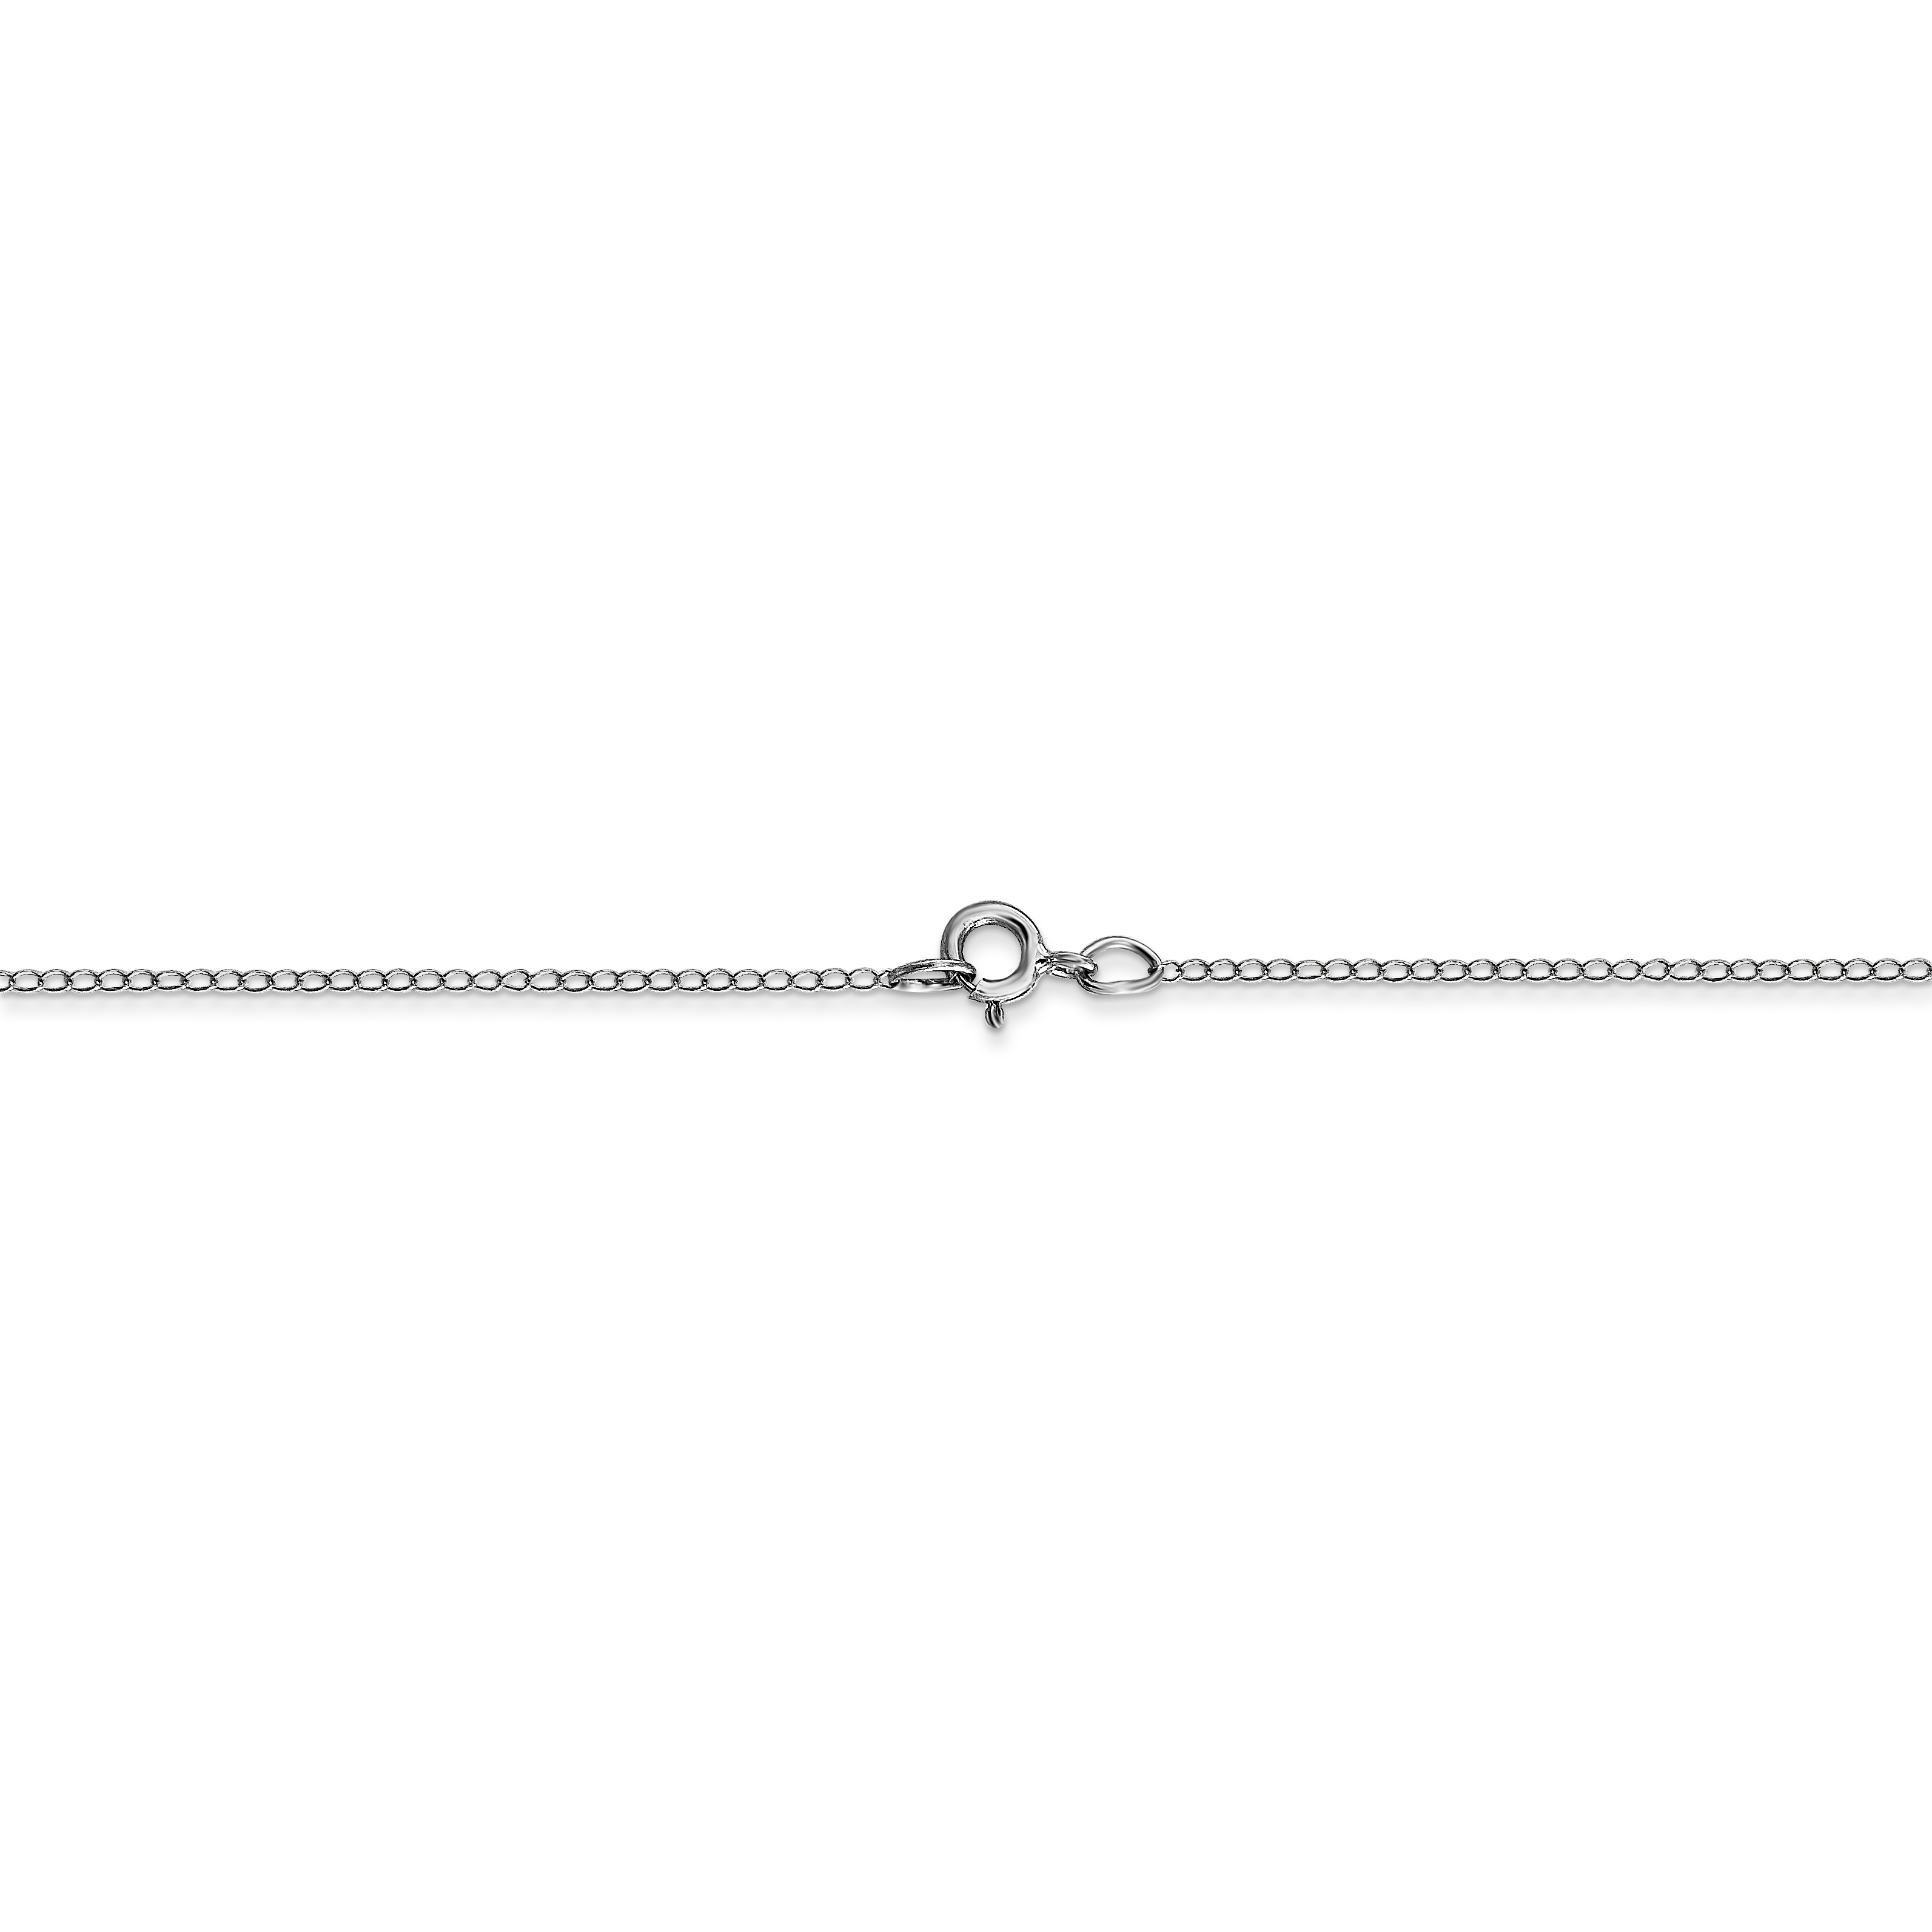 14k White Gold Carded Link Curb Chain Necklace 20 Inch Pendant Charm Fine Jewelry Gifts For Women For Her - image 2 of 6